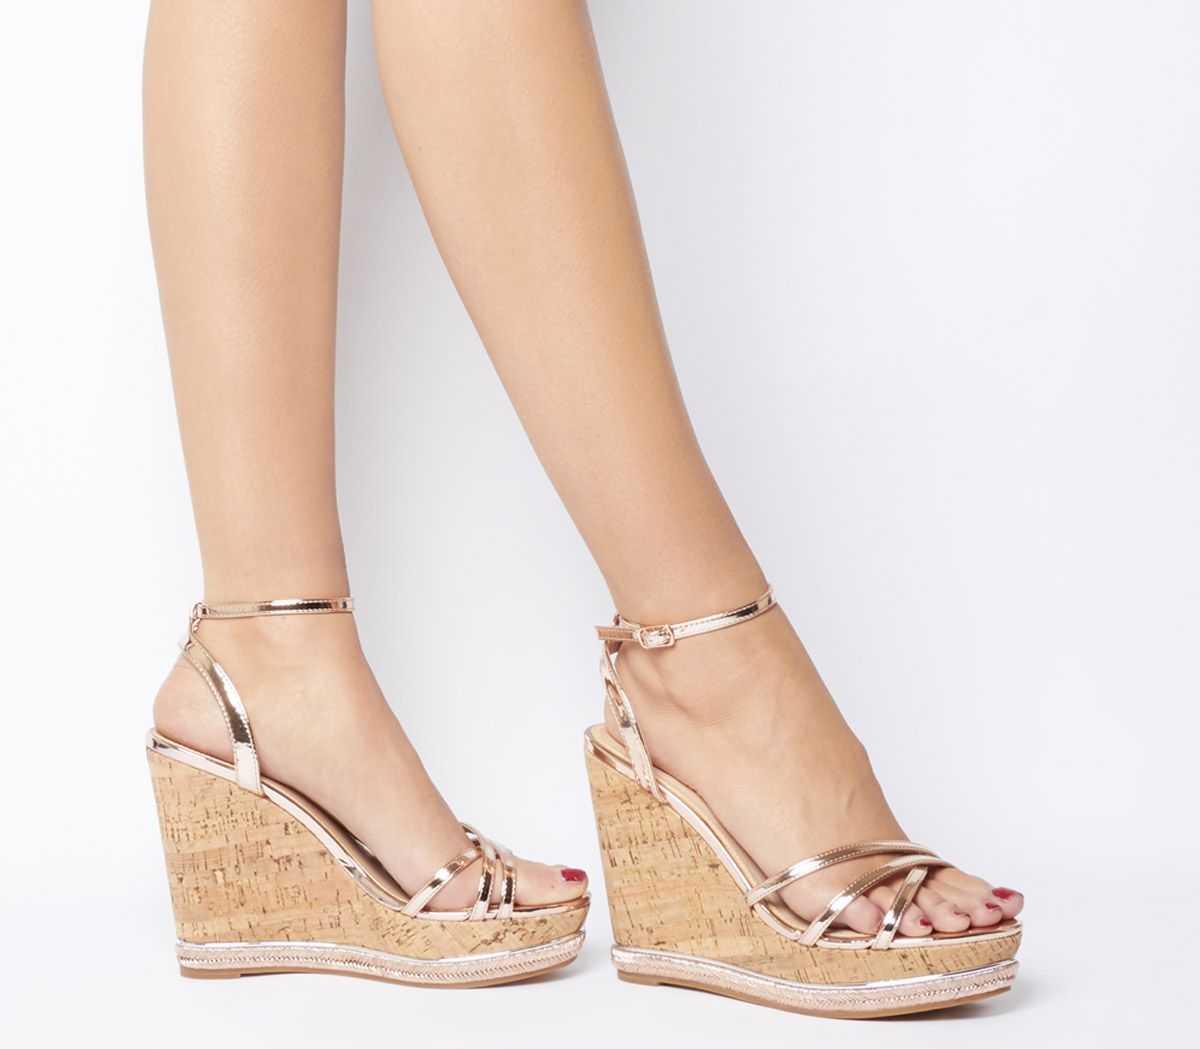 c709a830ac9c Office Honcho Strappy Glam Cork Wedges Rose Gold - High Heels